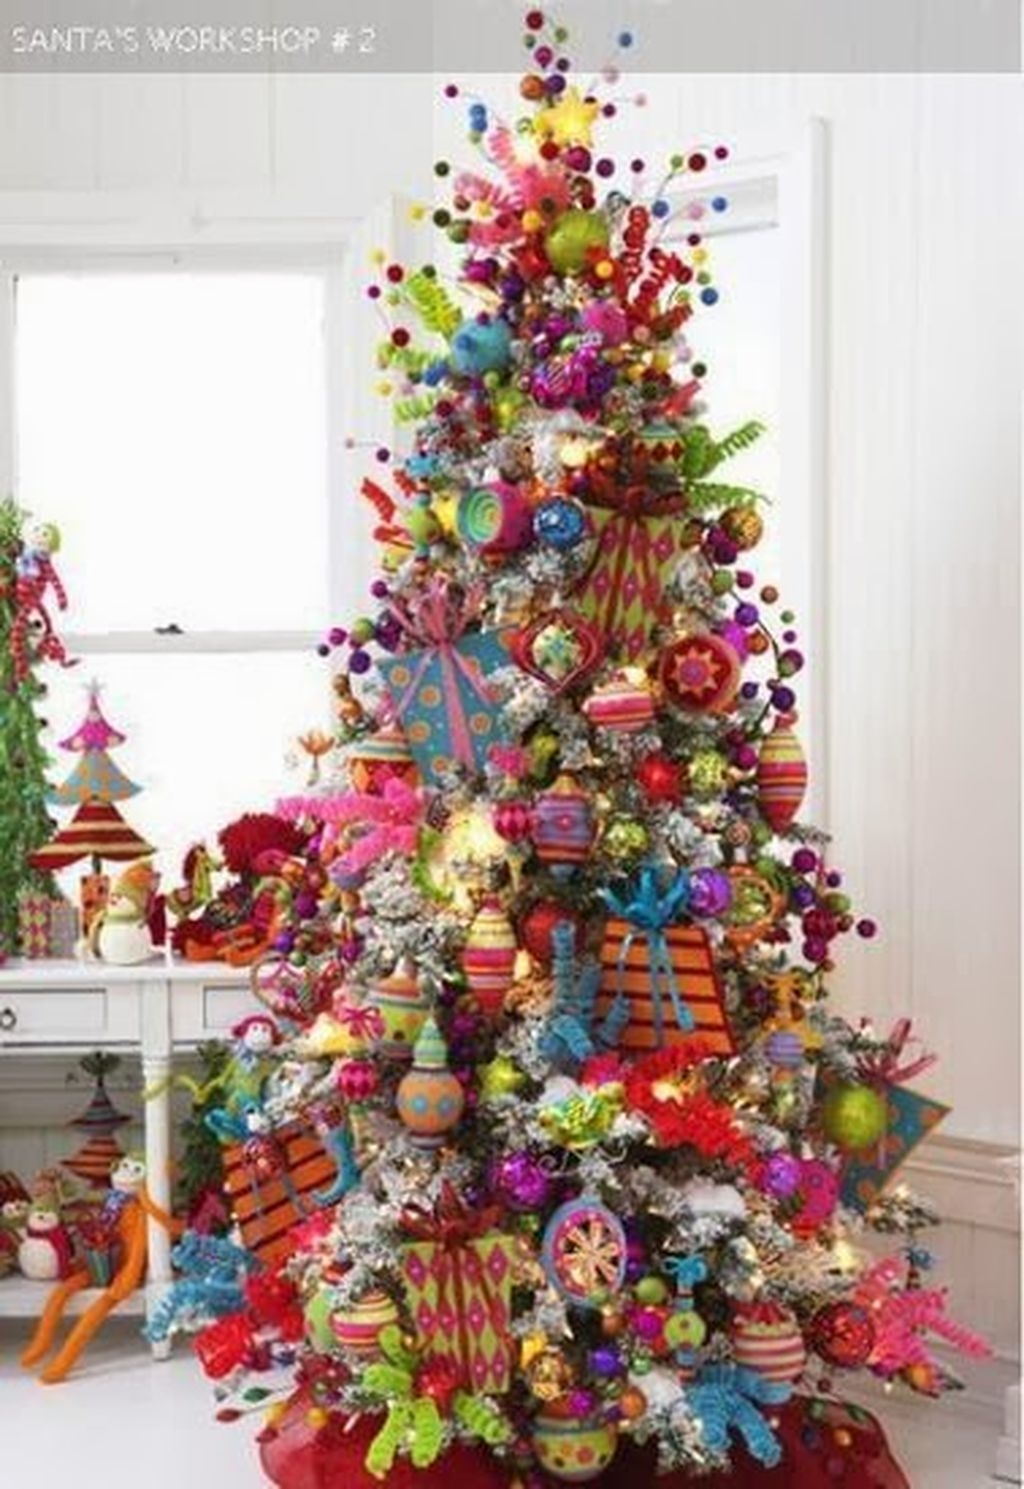 Cute And Colorful Christmas Tree Decoration Ideas To Freshen Up Your Home 10